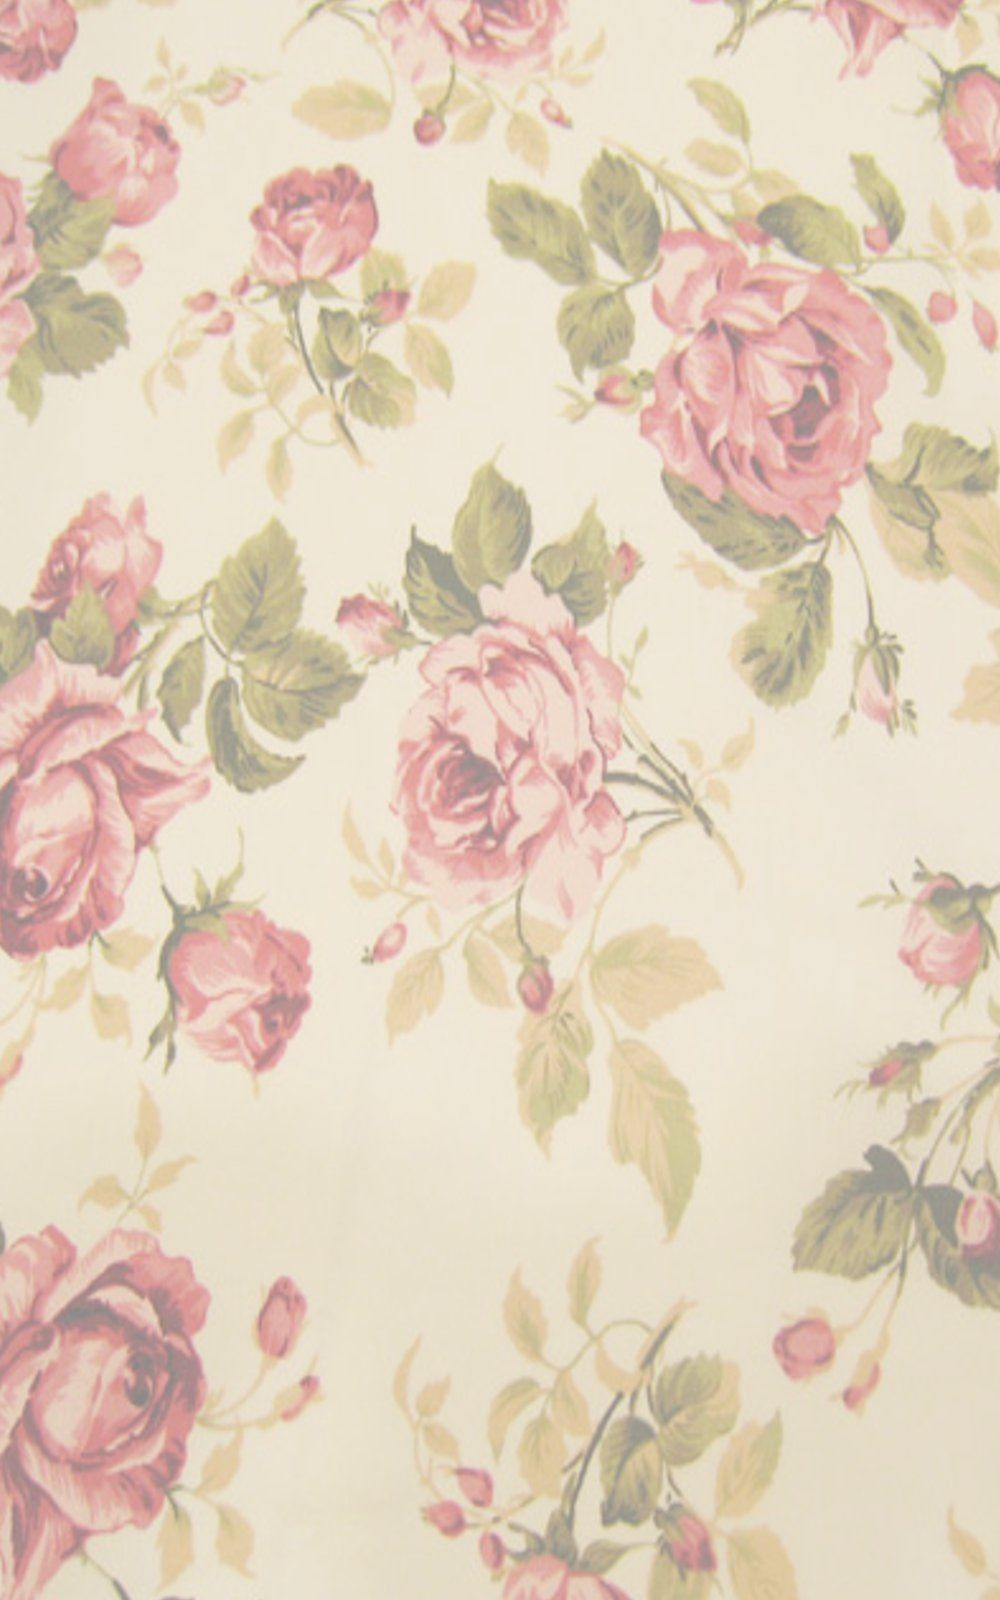 Vintage floral iphone wallpaper tumblr - Beautiful Vintage Floral Flowerr Rosee Wallpaper